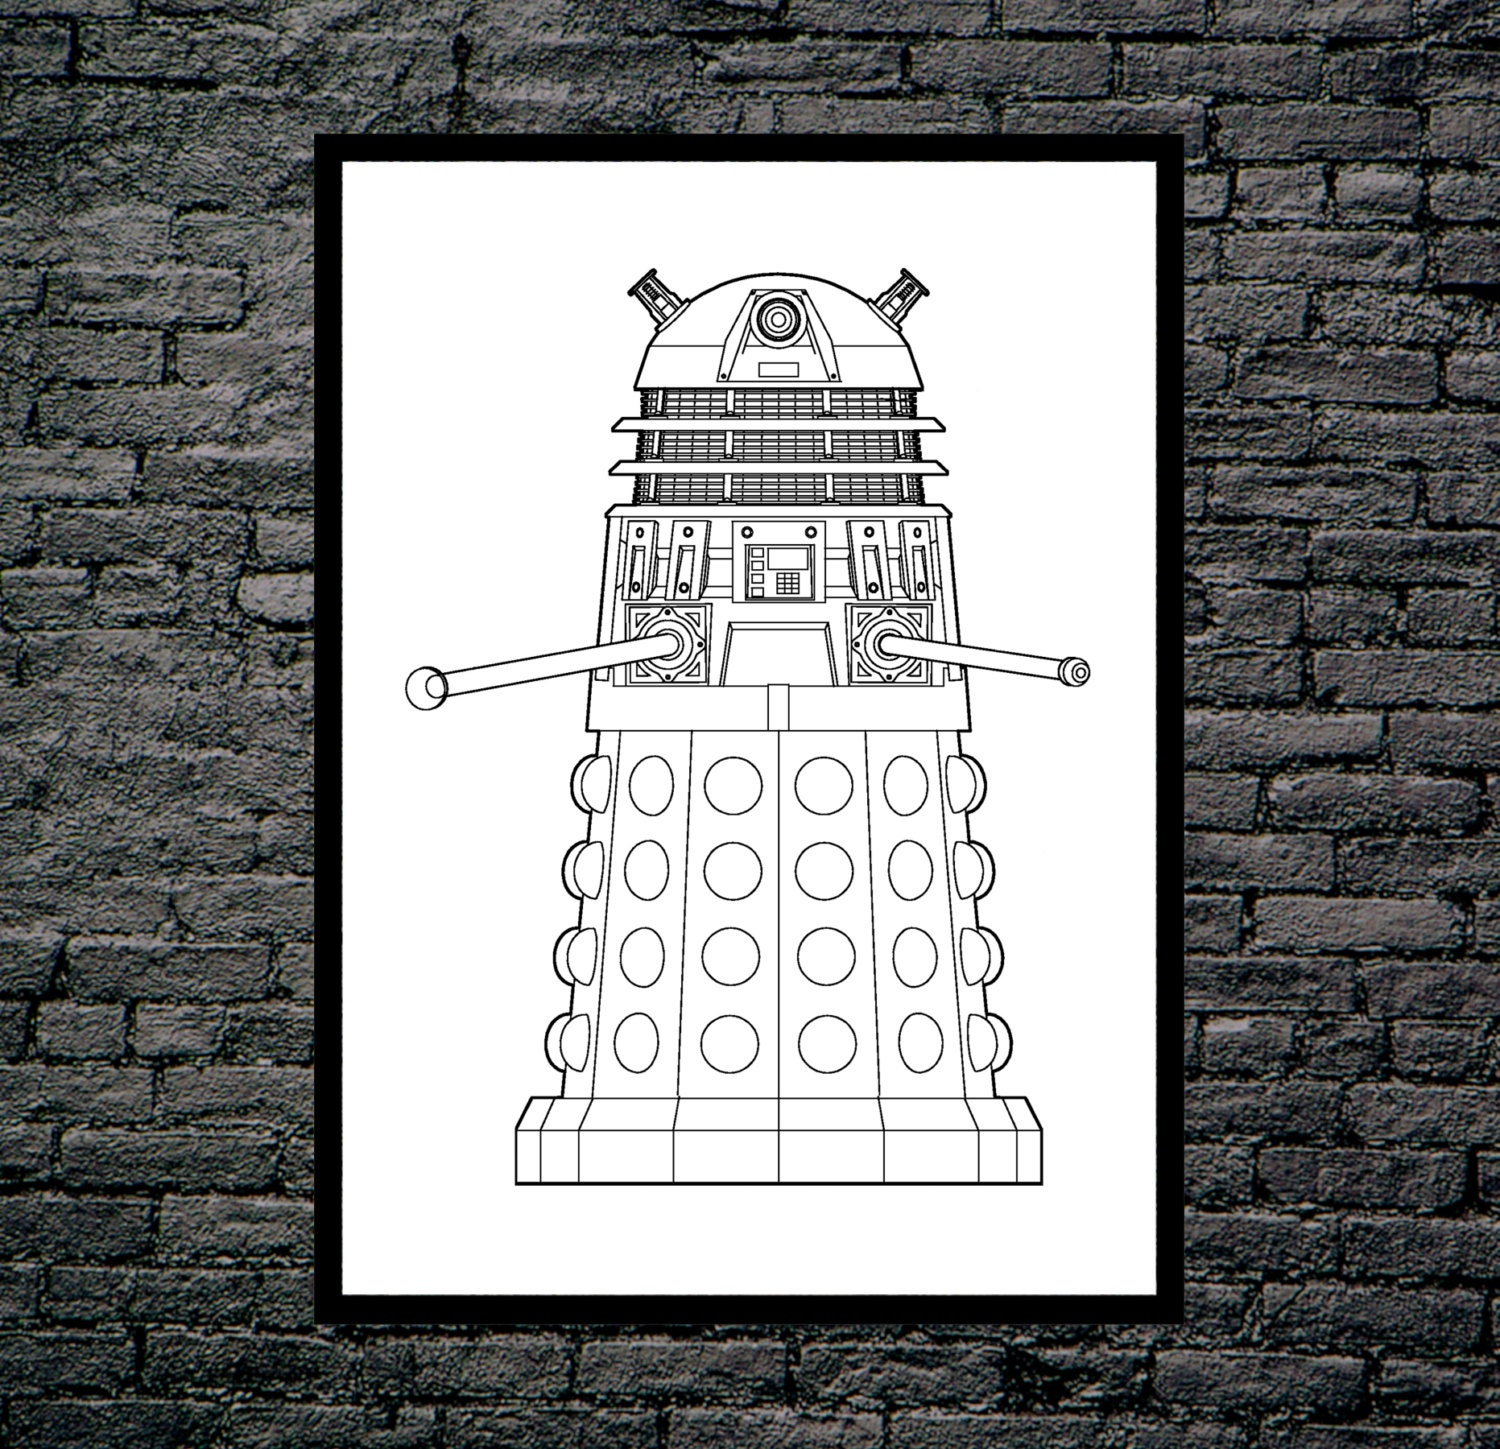 Doctor who dalek patent dr who dalek poster dalek blueprint doctor who dalek patent dr who dalek poster dalek blueprint dalek print dalek art dalek decor doctor who wall art malvernweather Gallery